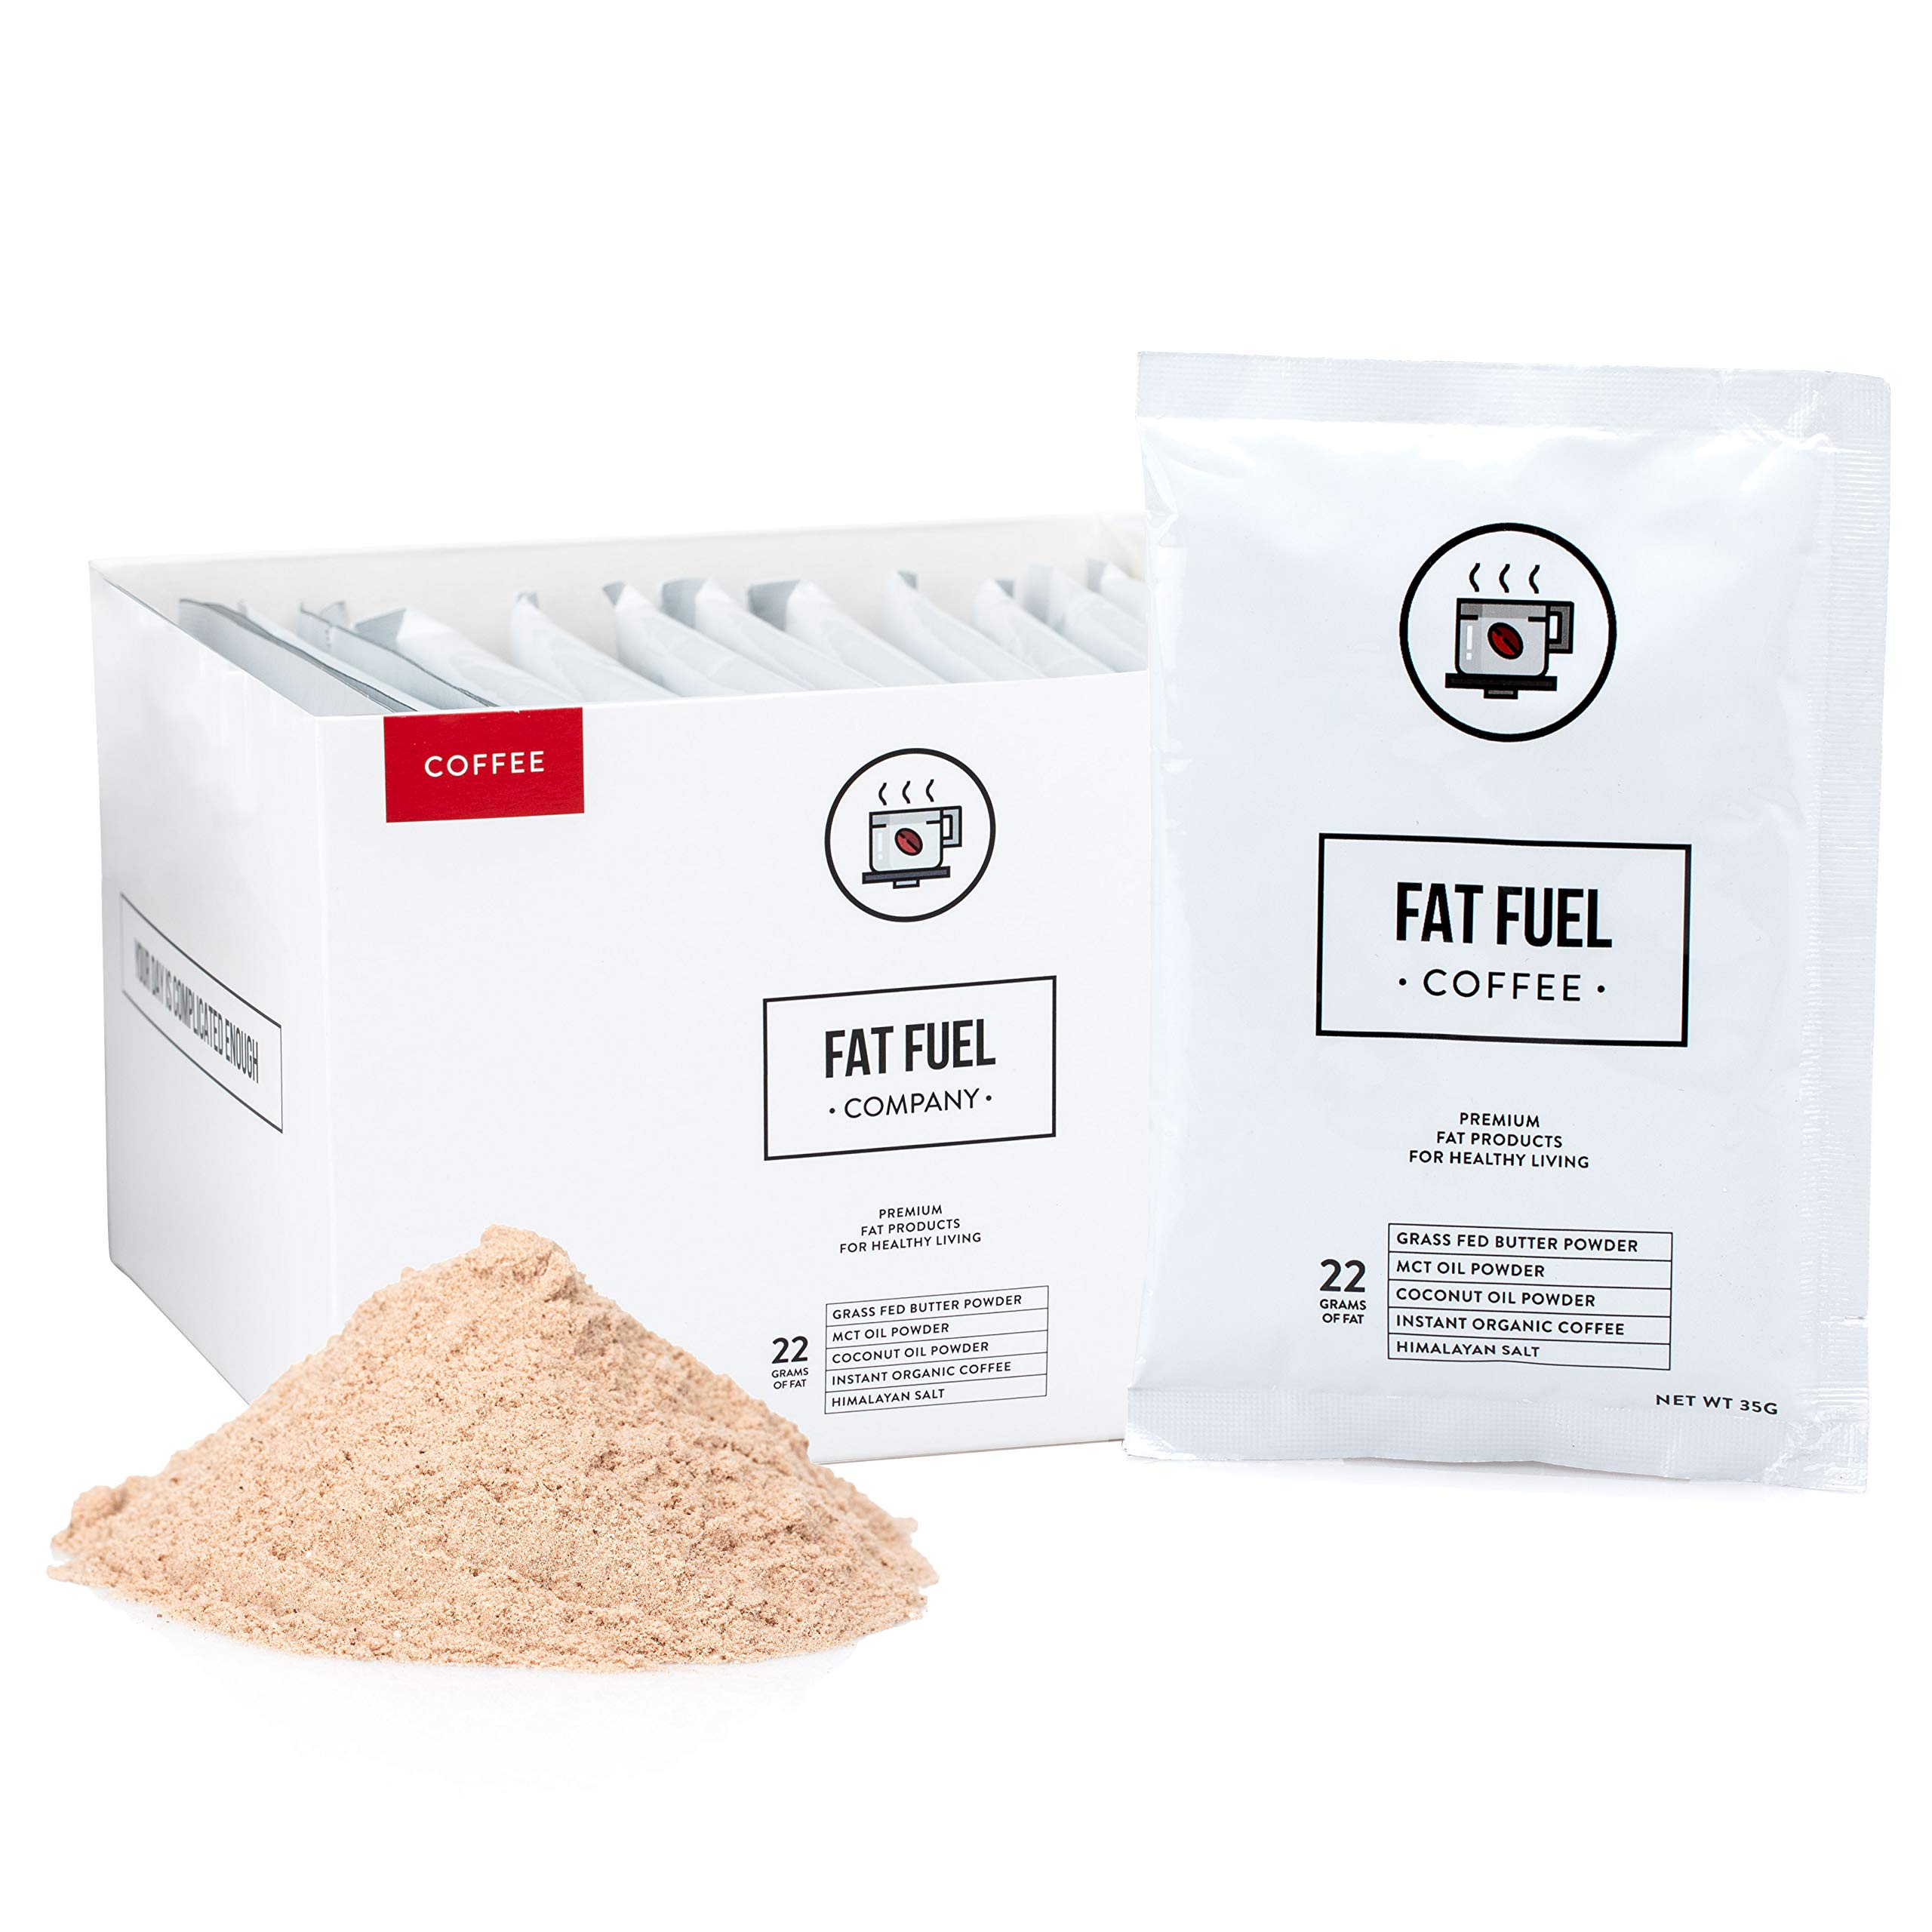 Instant Coffee Packets for Ketogenic, Paleo, and Low-Carb Diets, Weight Loss Coffee with Grass-Fed Butter, MCT Oil, Coconut Oil Powders - Fat Fuel Company